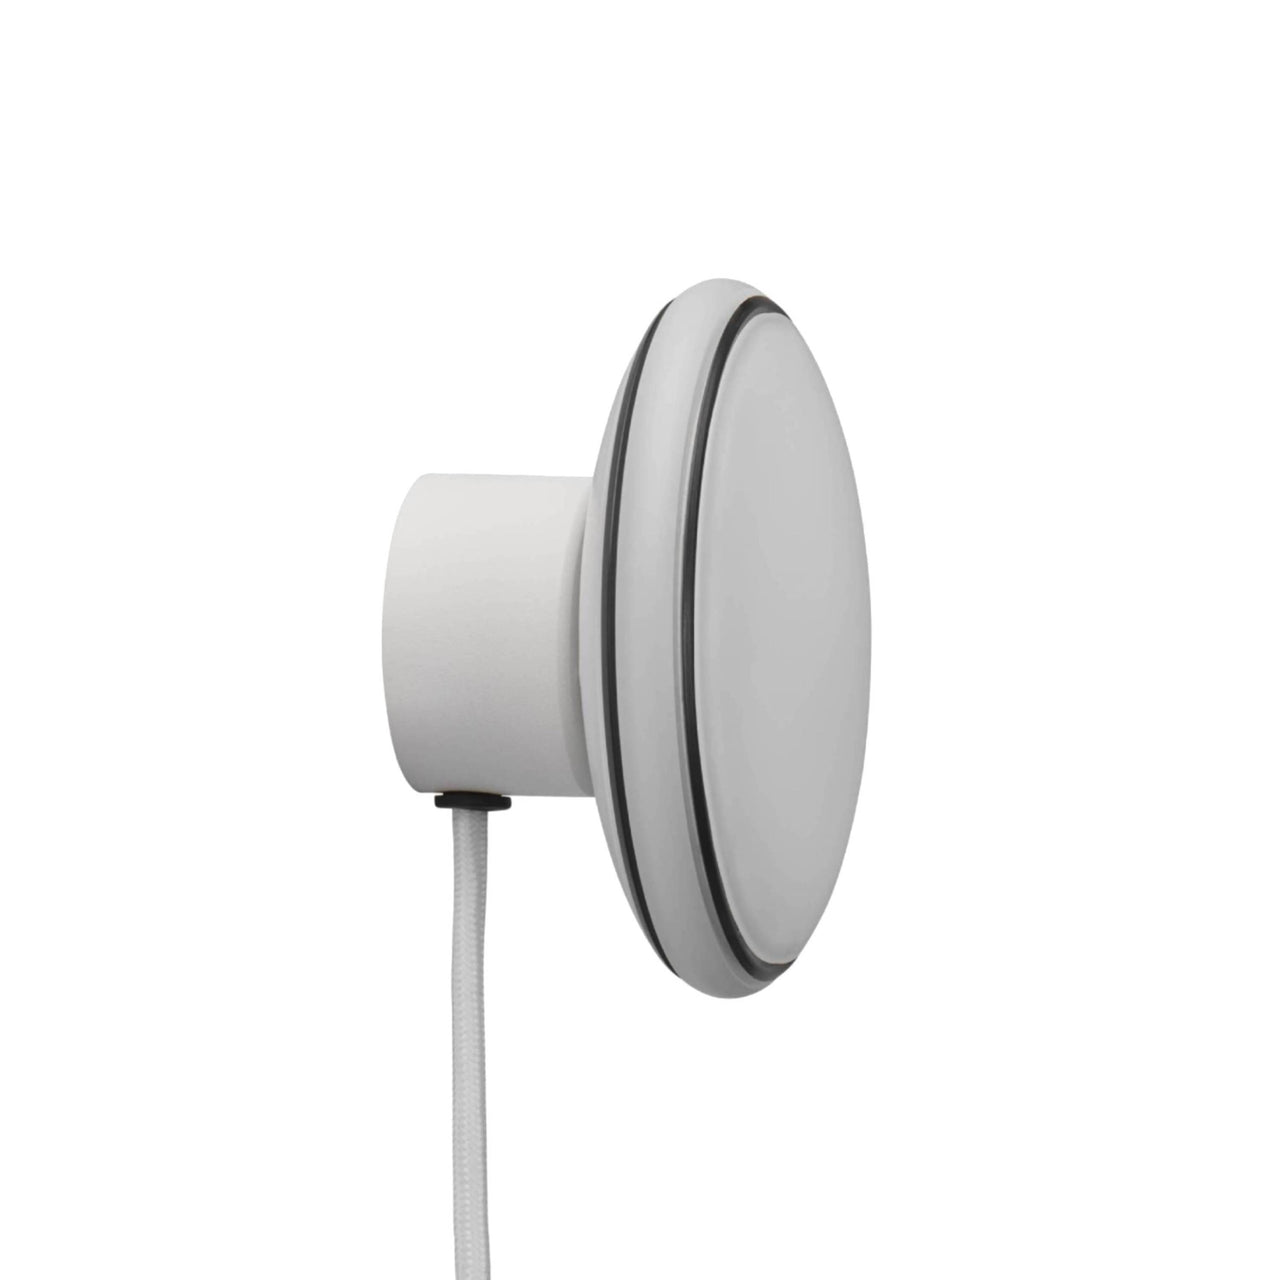 ØS1 Wall Lamp: White + Black + White + Without Node